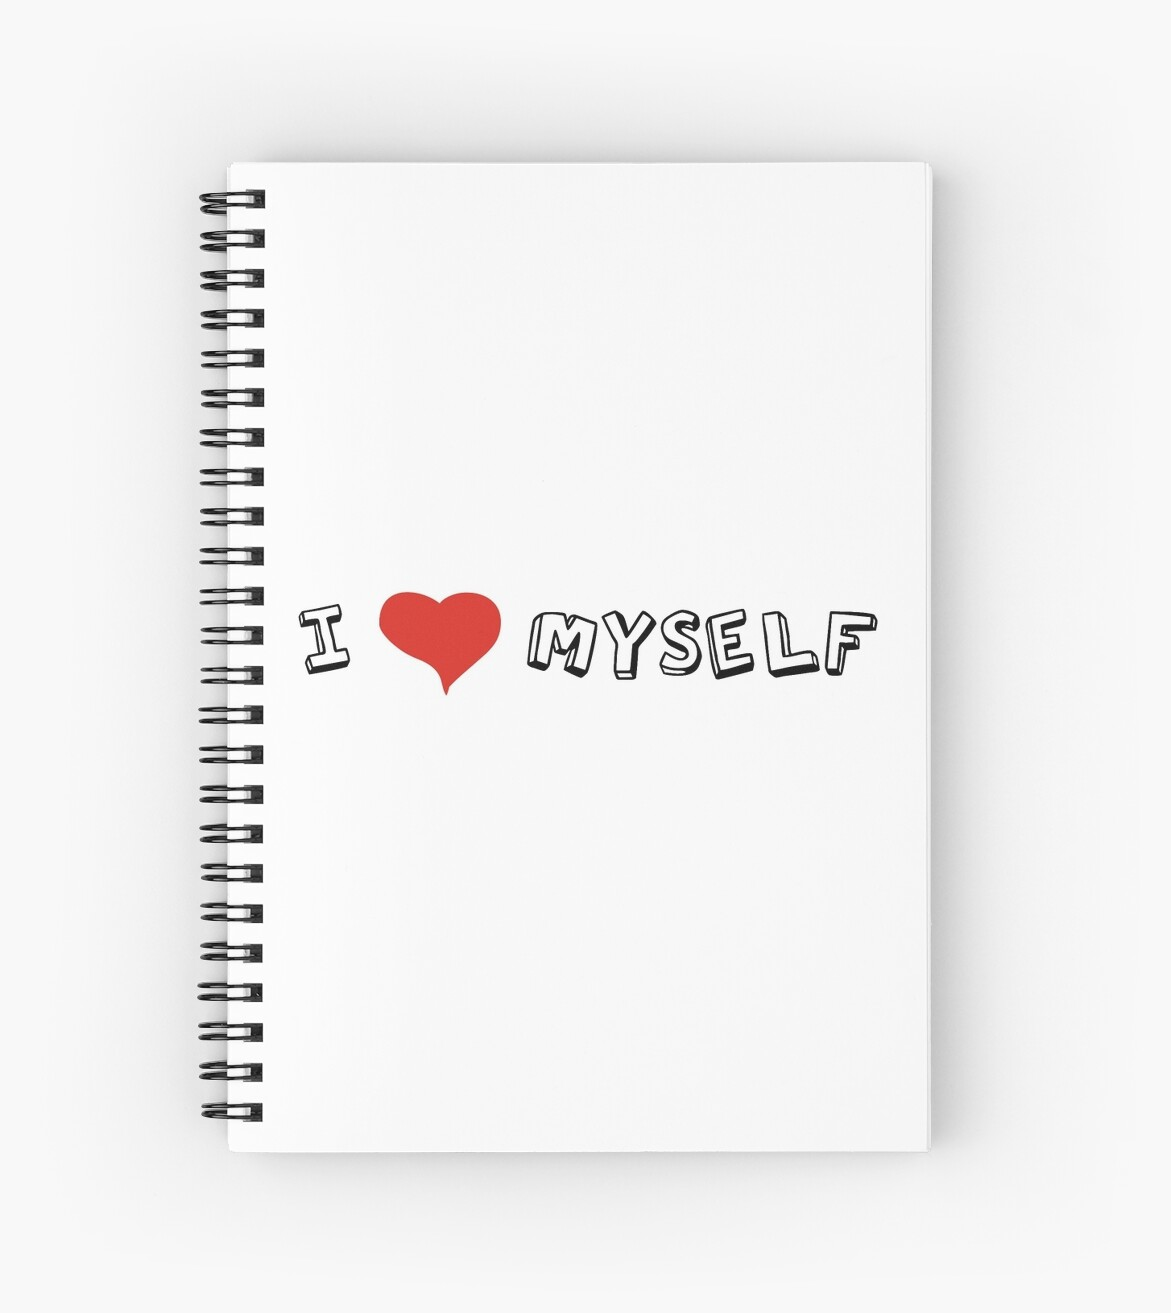 I Love Myself Self Love Quotes Sarcastic Funny Cool Spiral